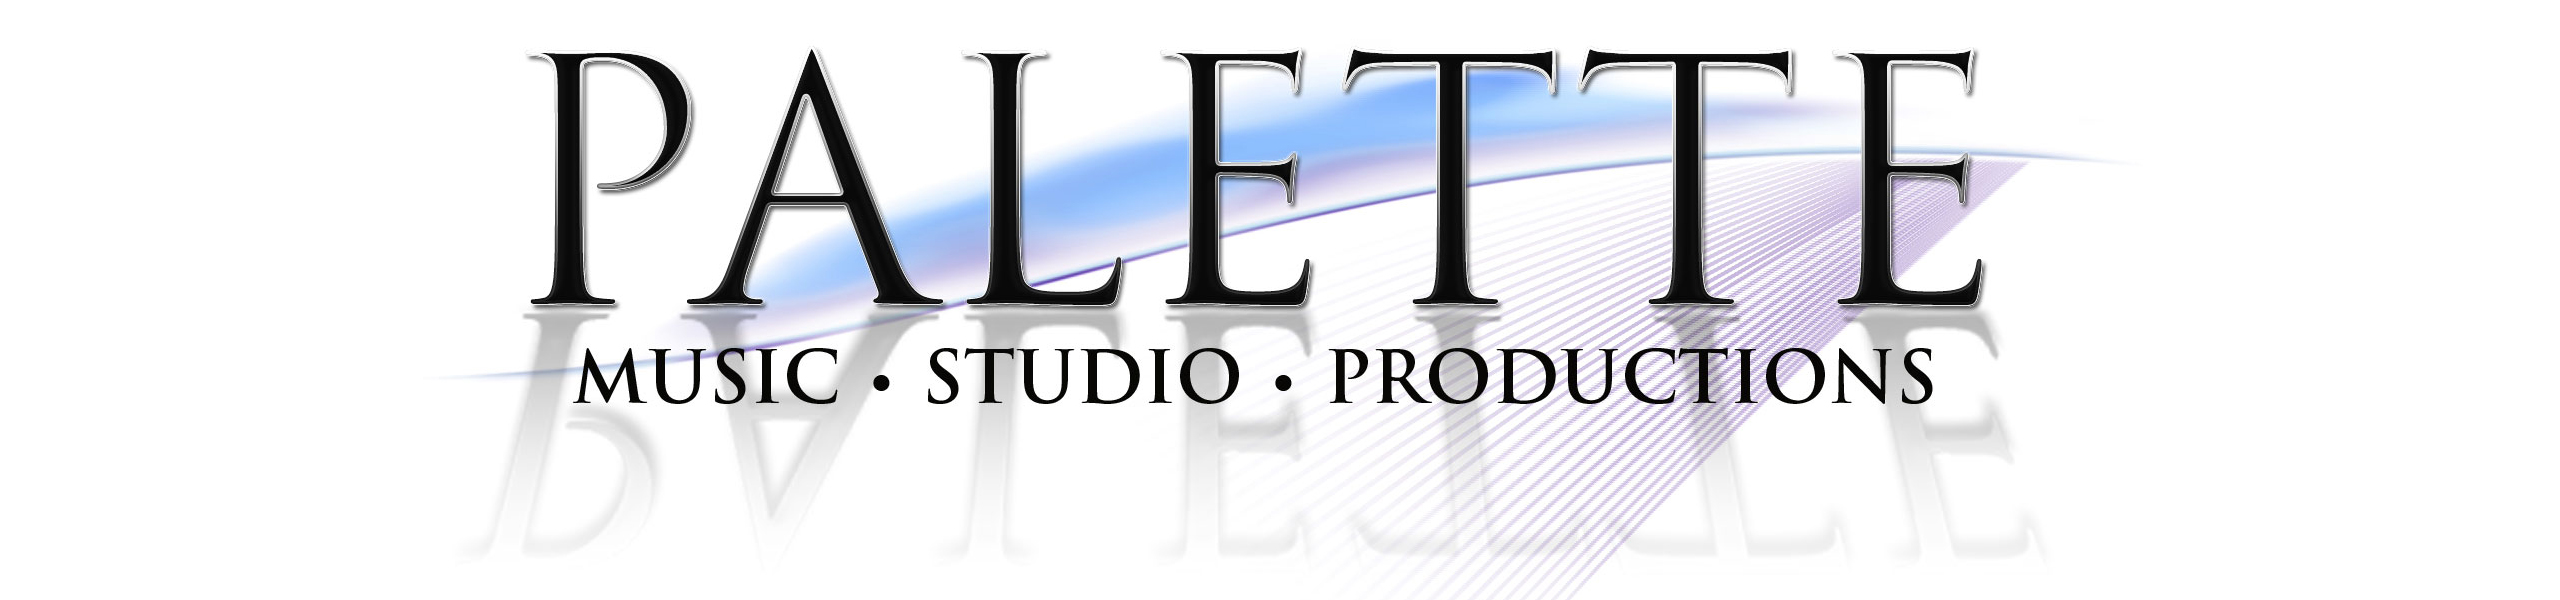 About Palette Music Studio Productions - Jeff Silverman - Virtual Studio Networks